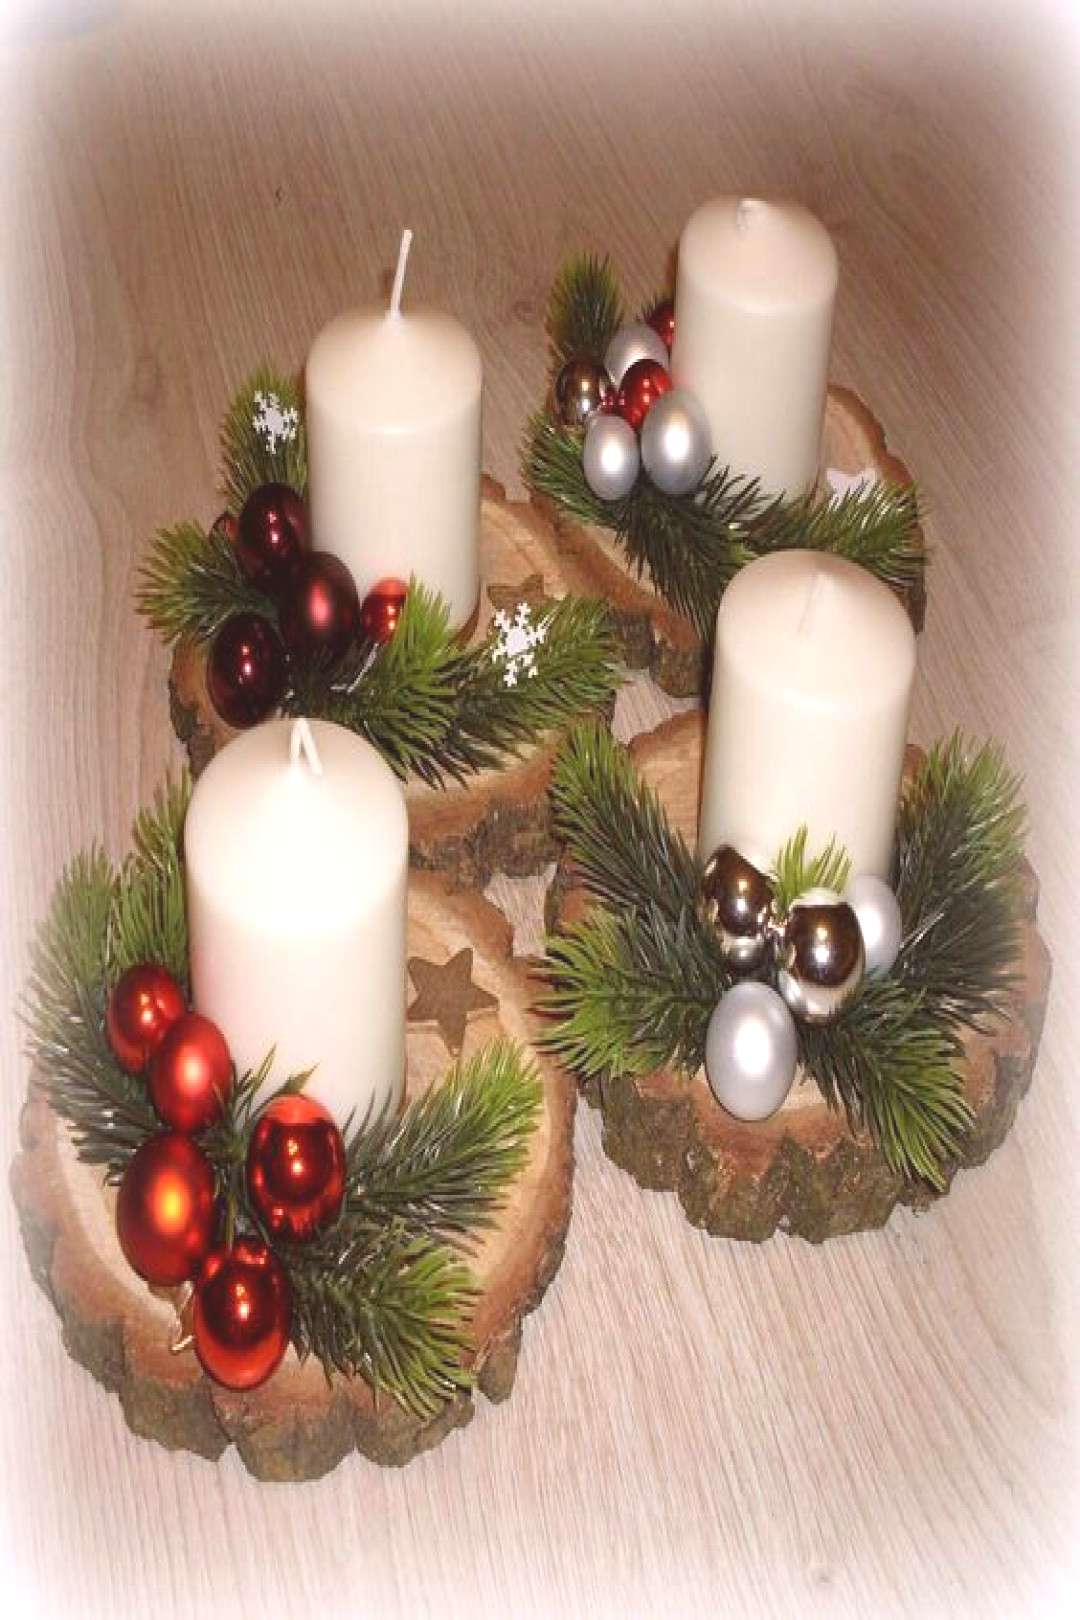 100 DIY Christmas Centerpieces for Tables and decoration ideas - Ethinify